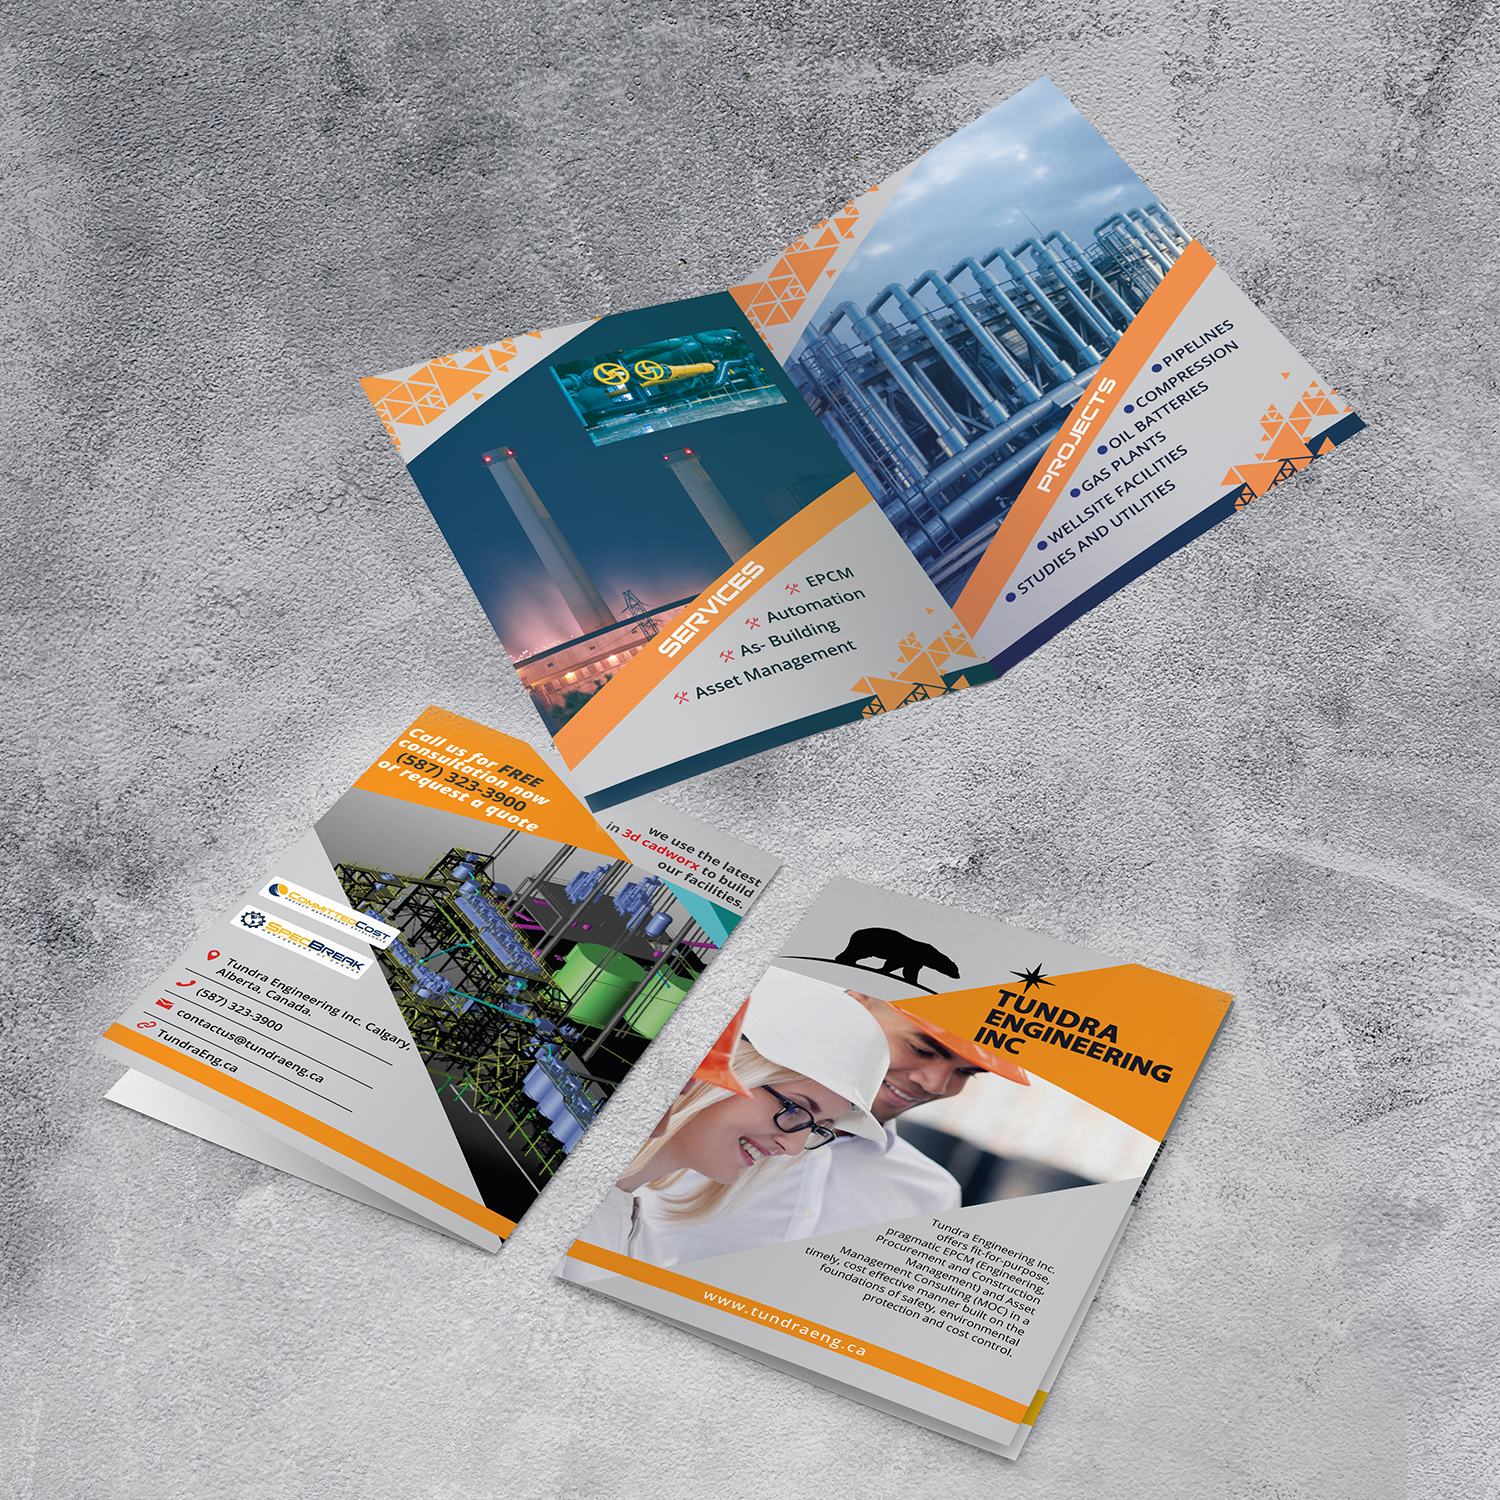 Professional, Serious, Oil And Gas Exploration Flyer Design for a